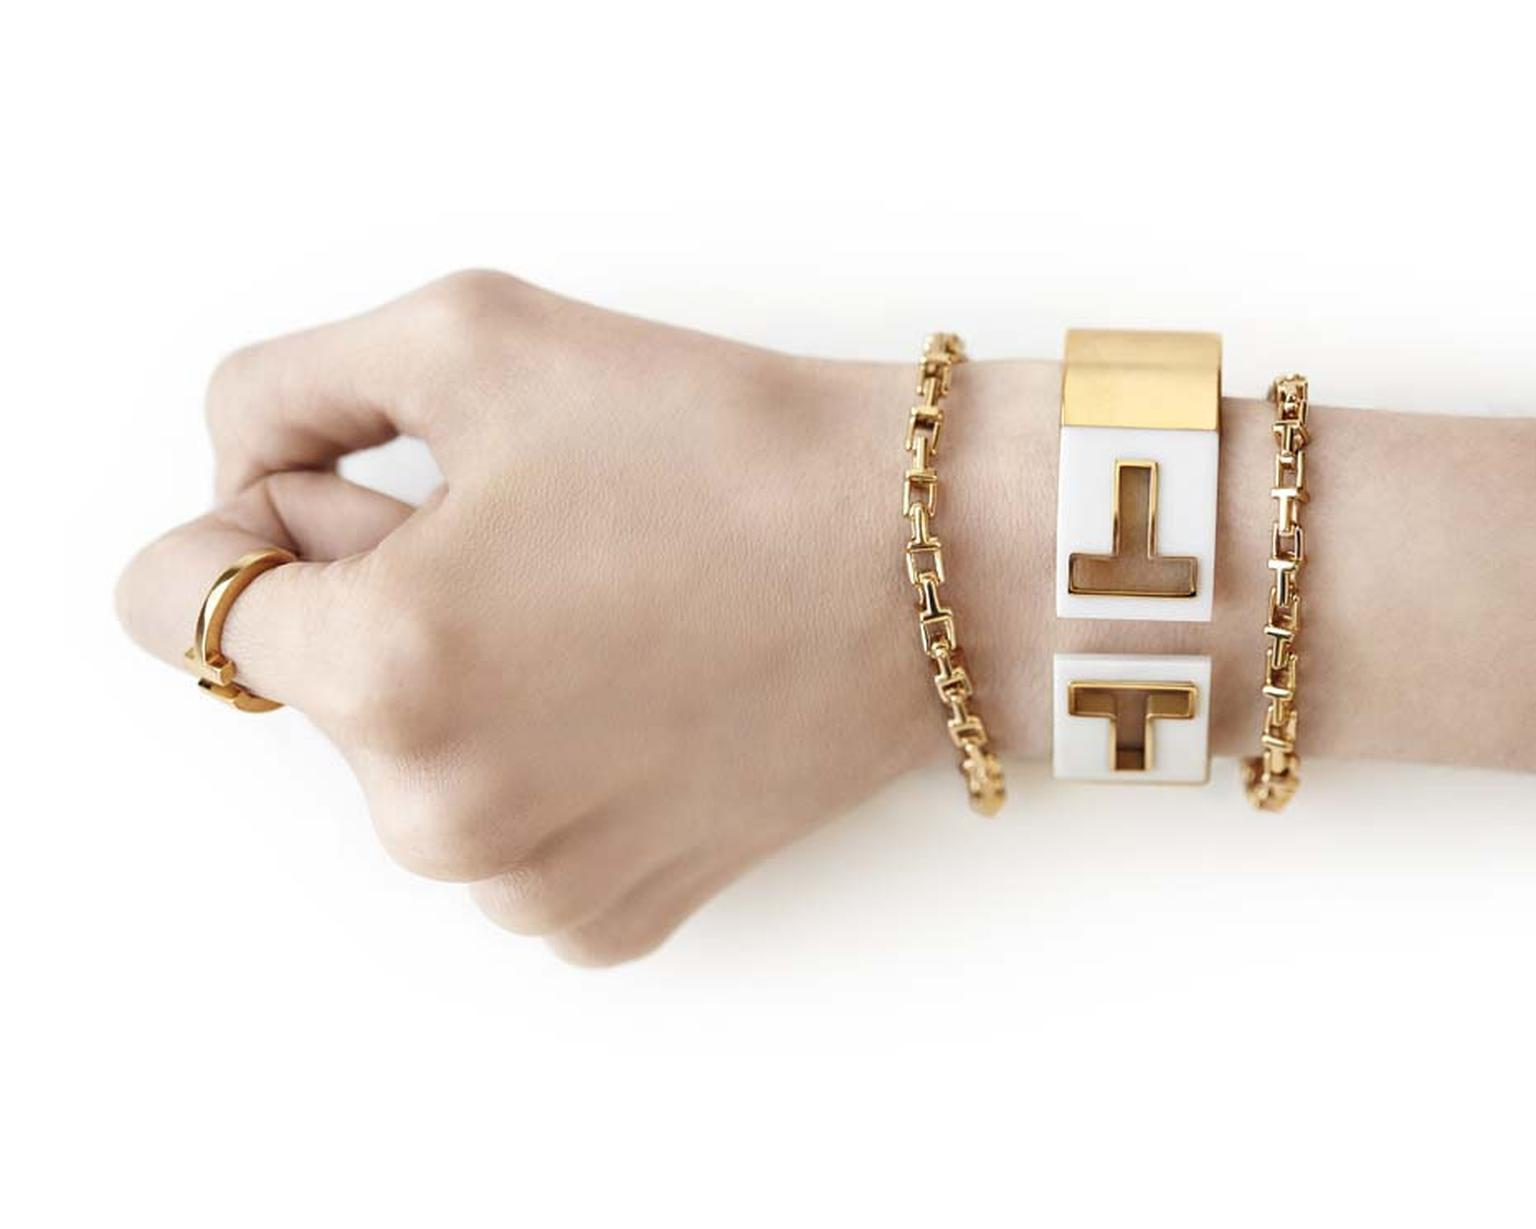 Tiffany and Co. Tiffany T ring in rose gold, chain bracelets and bar hinged cuff.